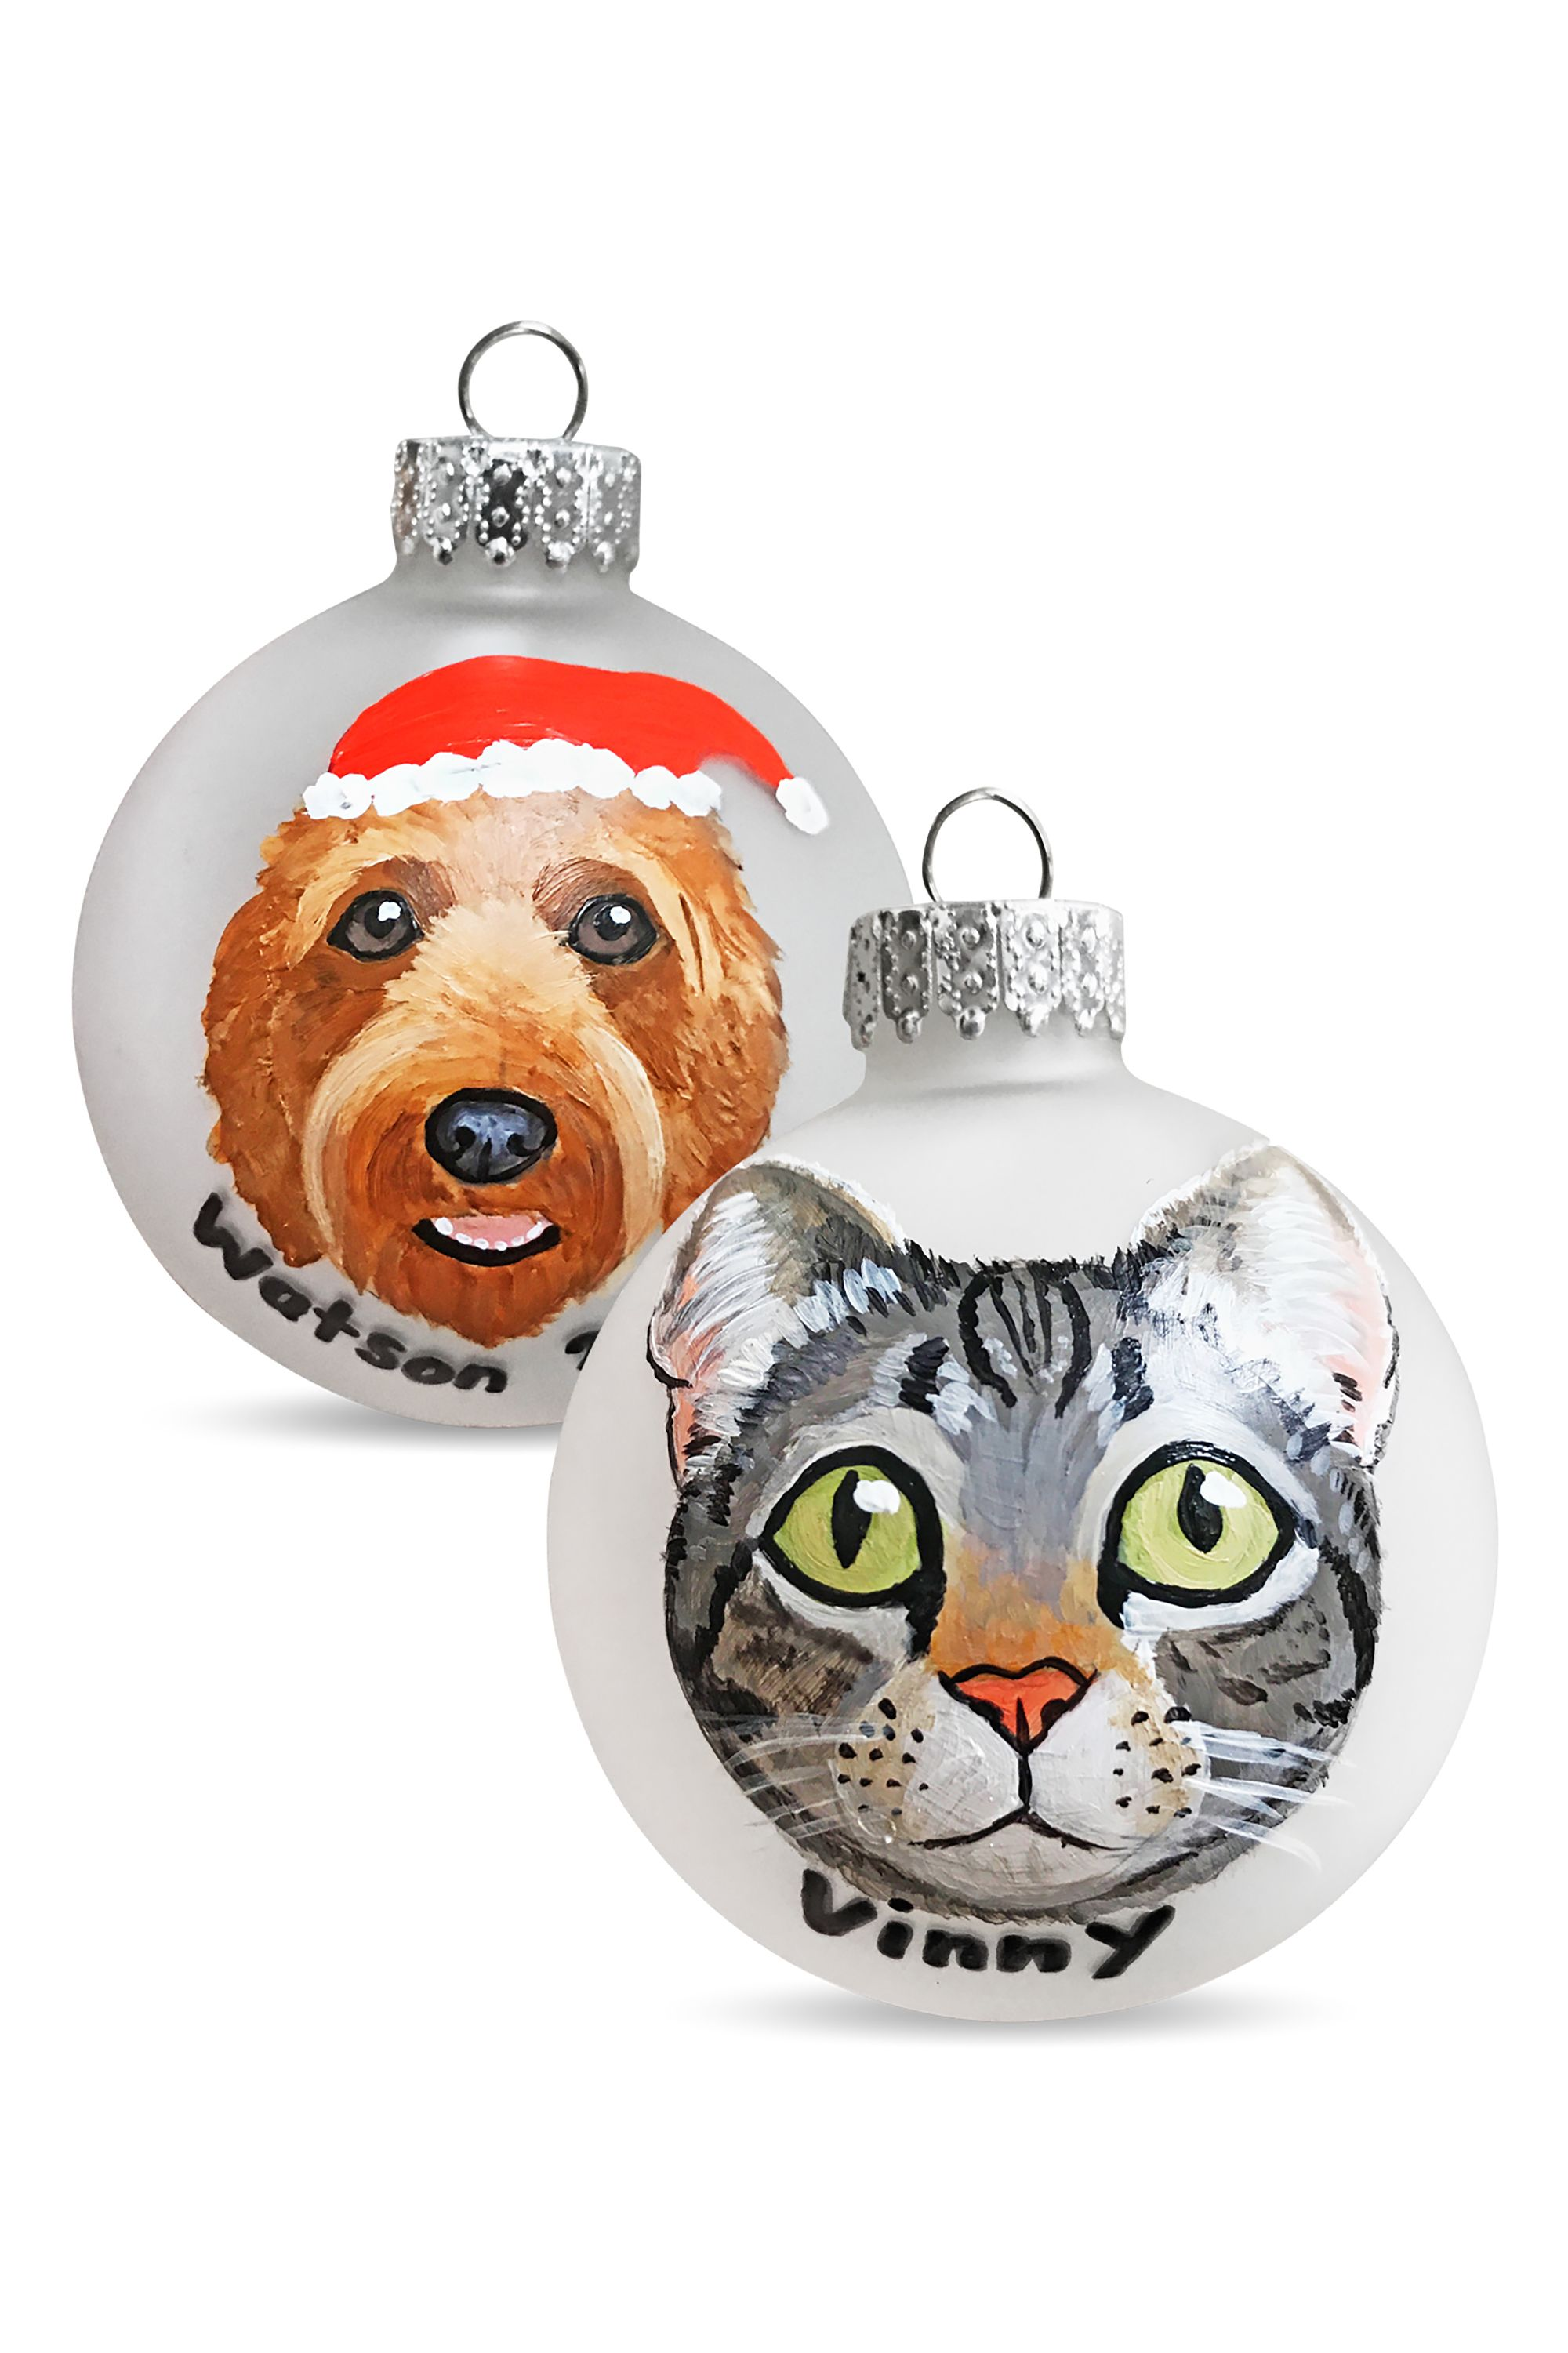 33 Best Dog and Cat Gifts - Best Christmas Pet Gift Ideas